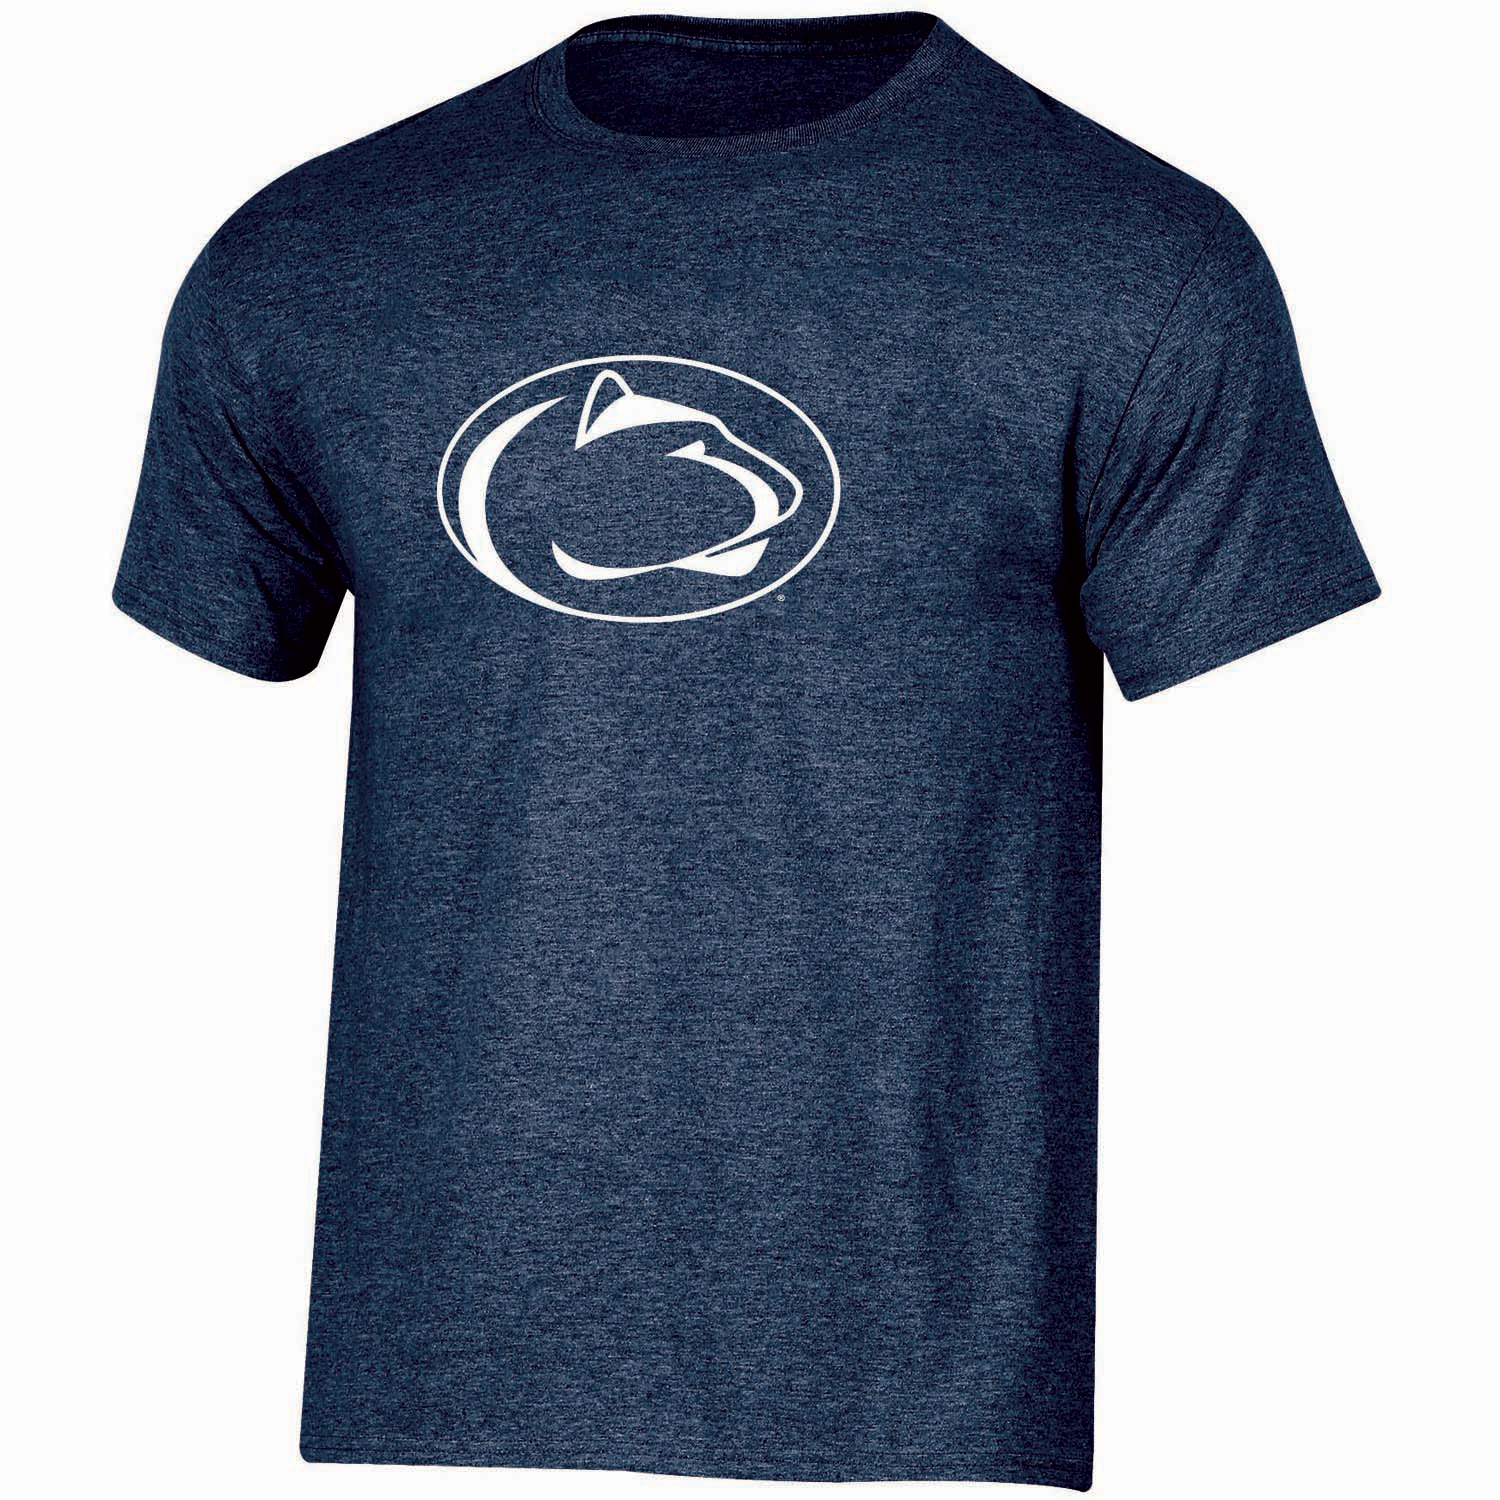 Youth Russell Navy Penn State Nittany Lions Oversized Graphic Crew Neck T-Shirt